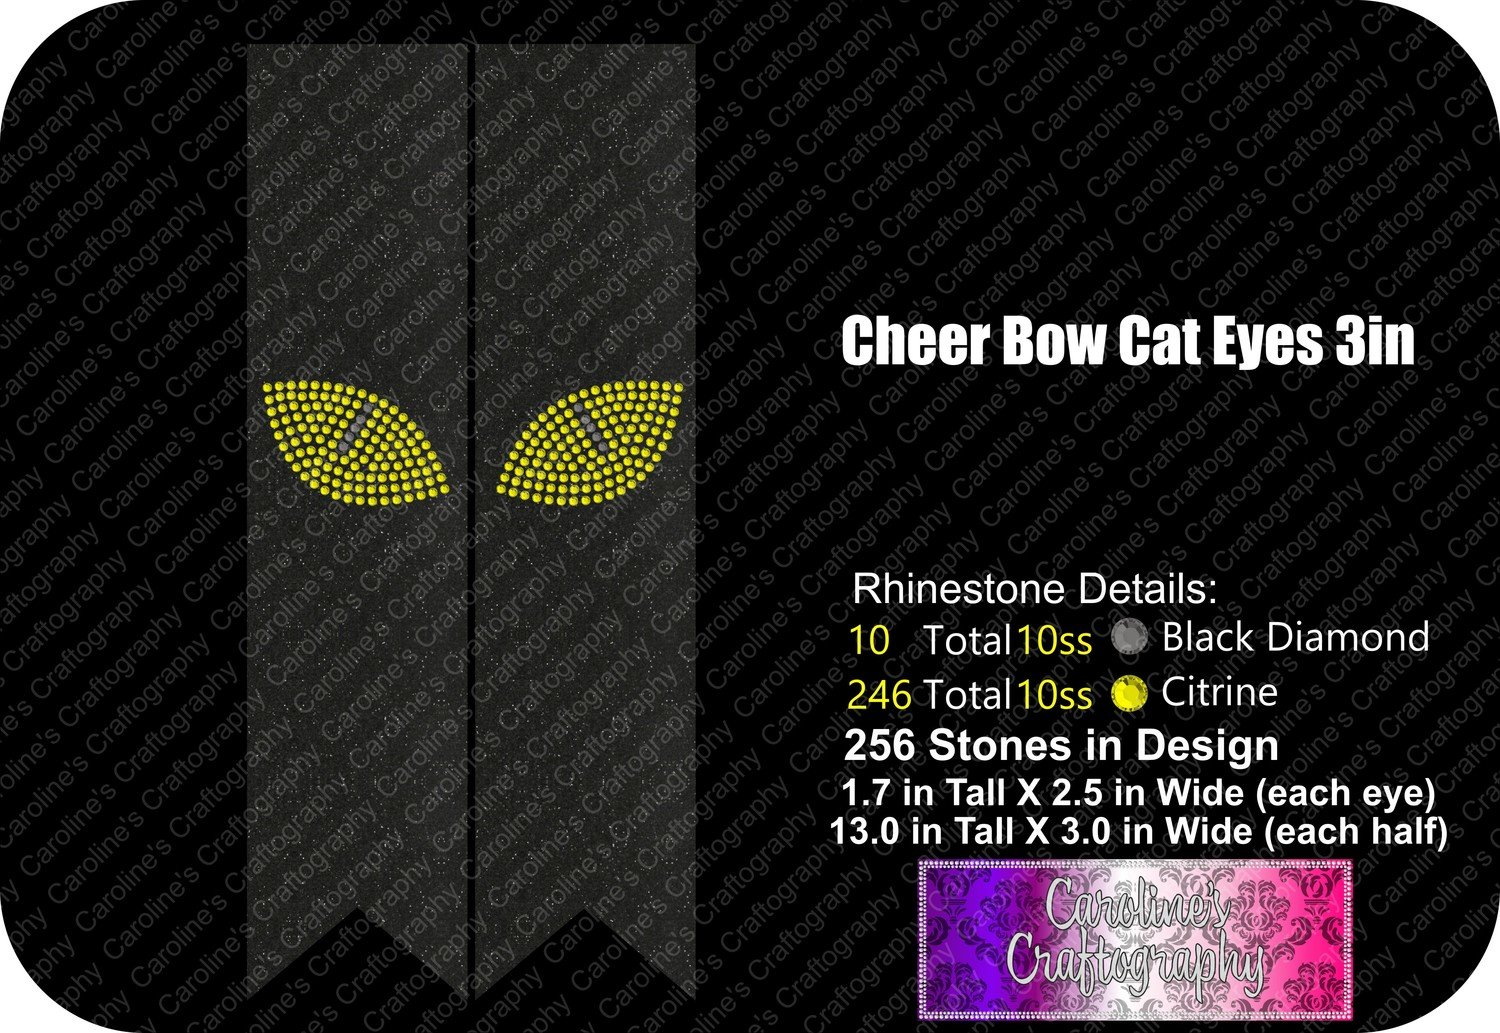 Cheer Bow Cat Eyes Stone 3in